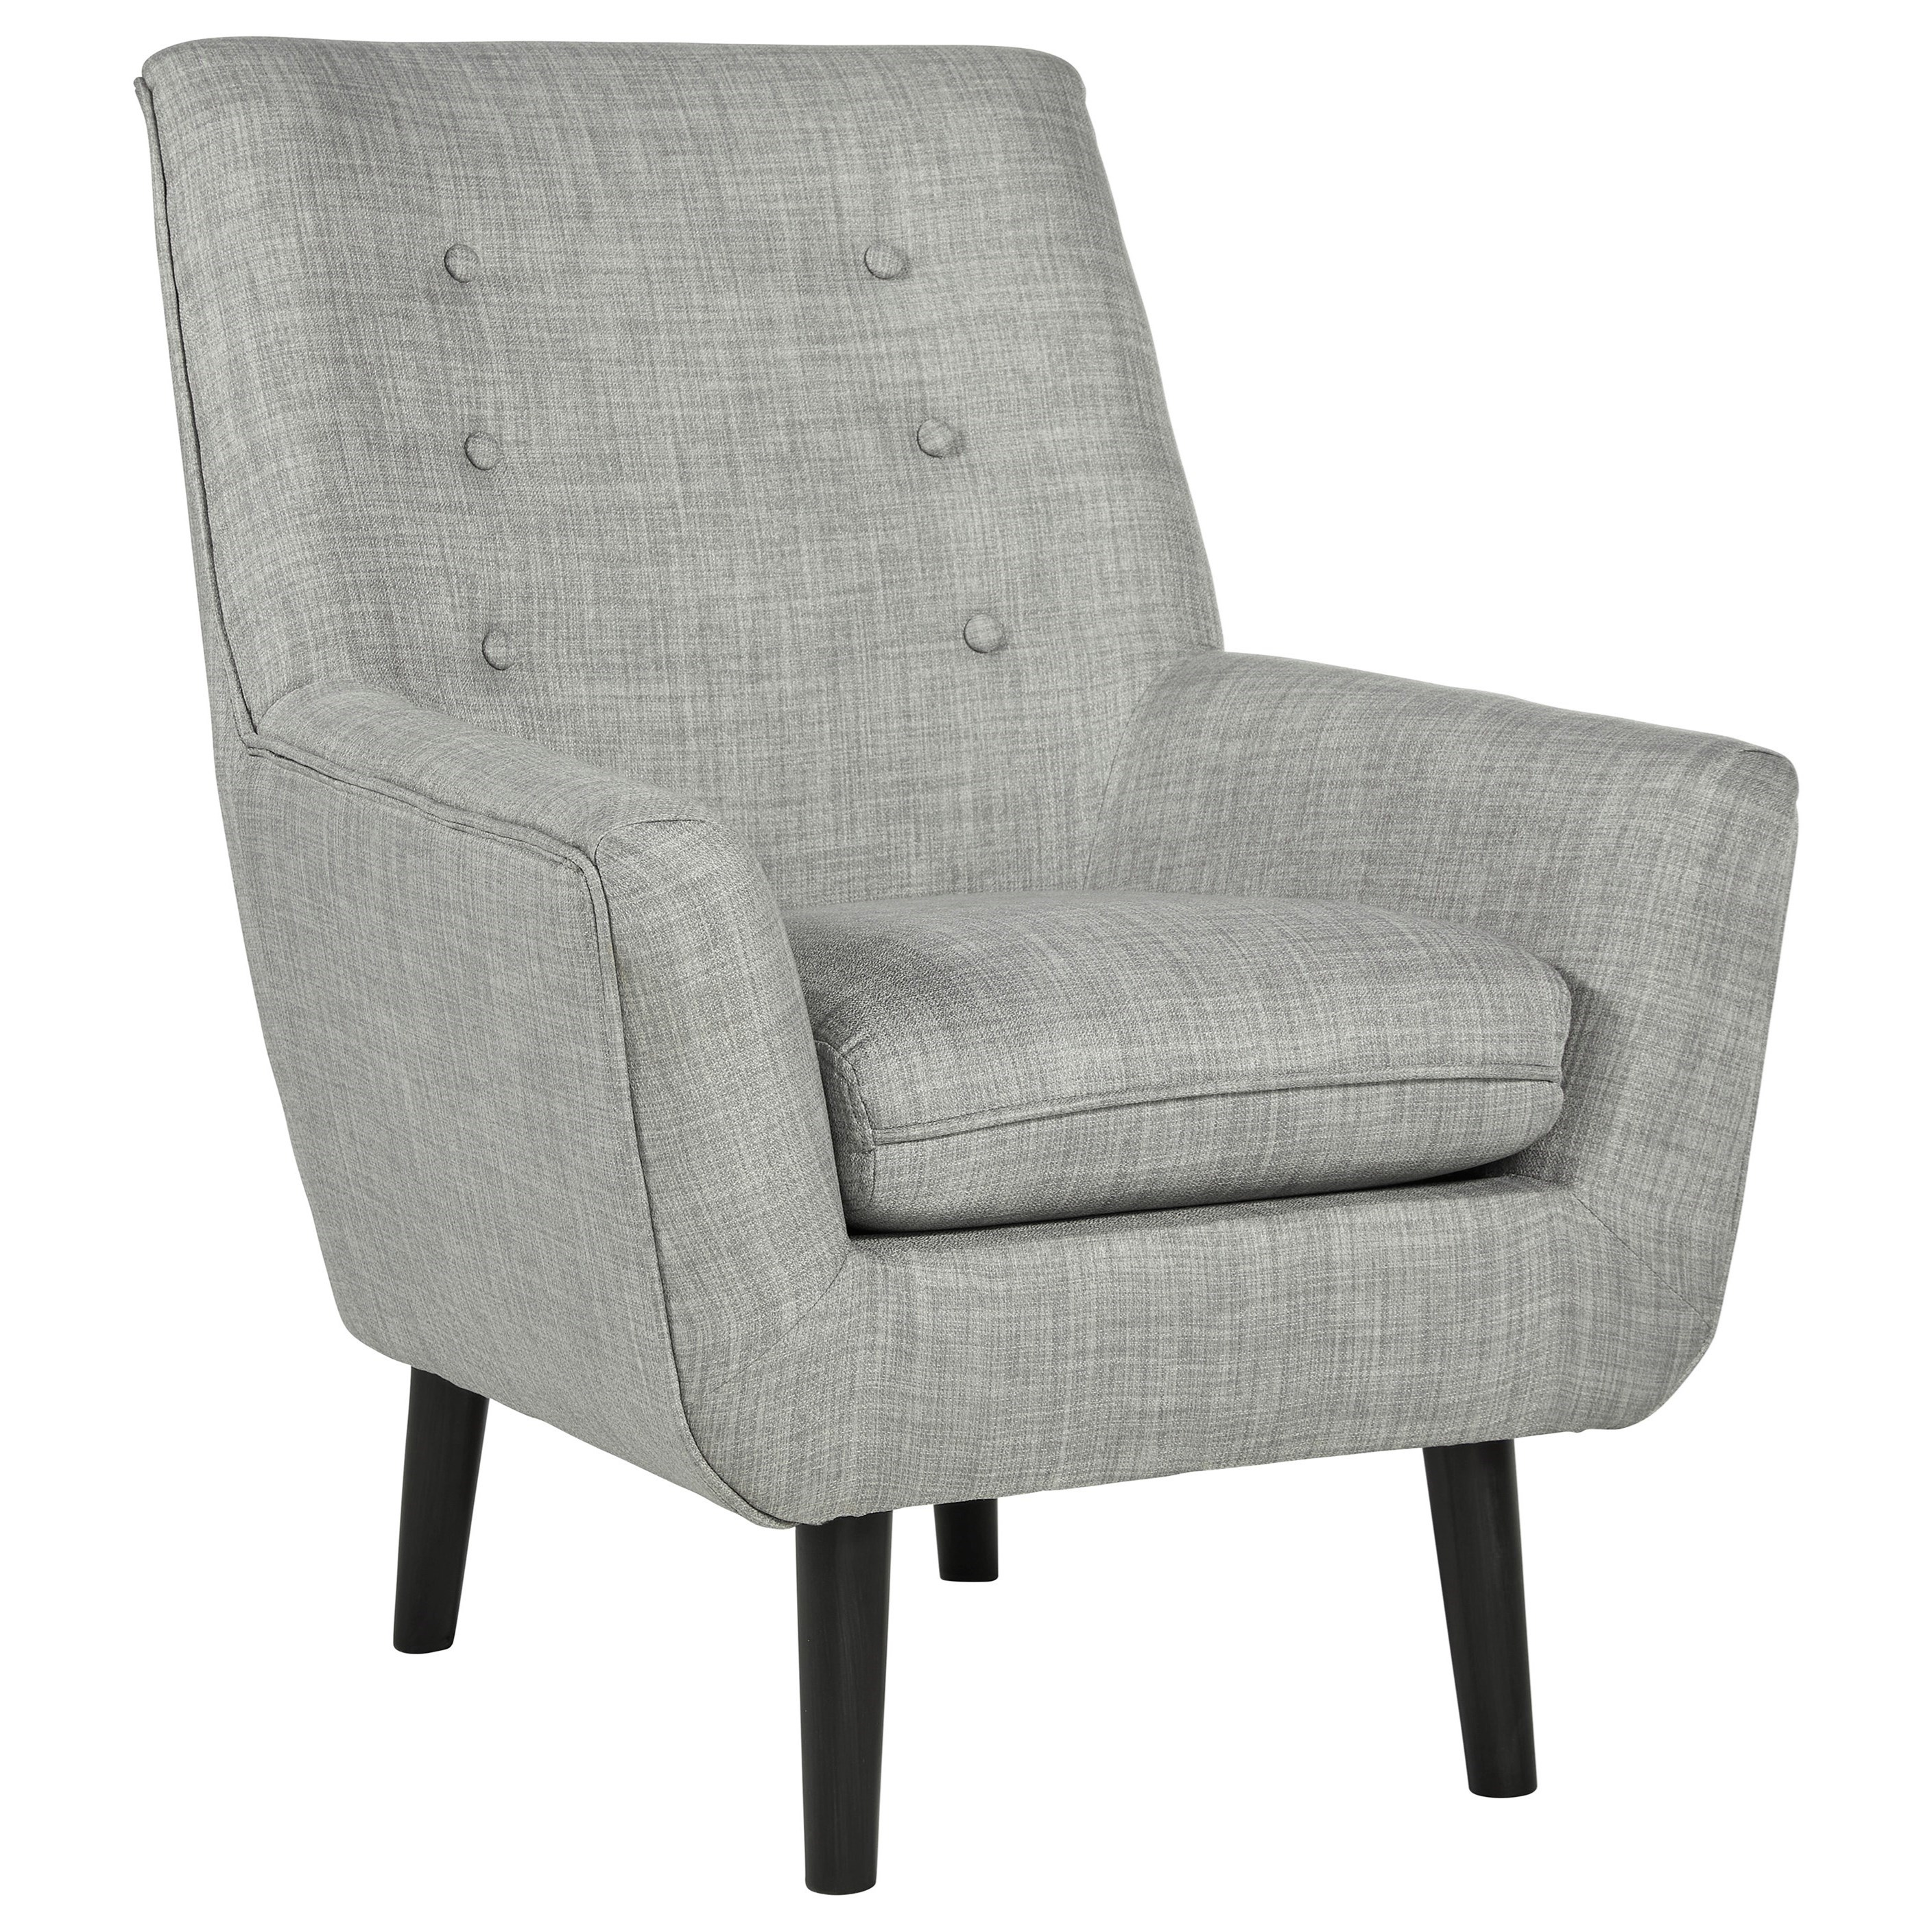 Zossen Accent Chair by Signature at Walker's Furniture